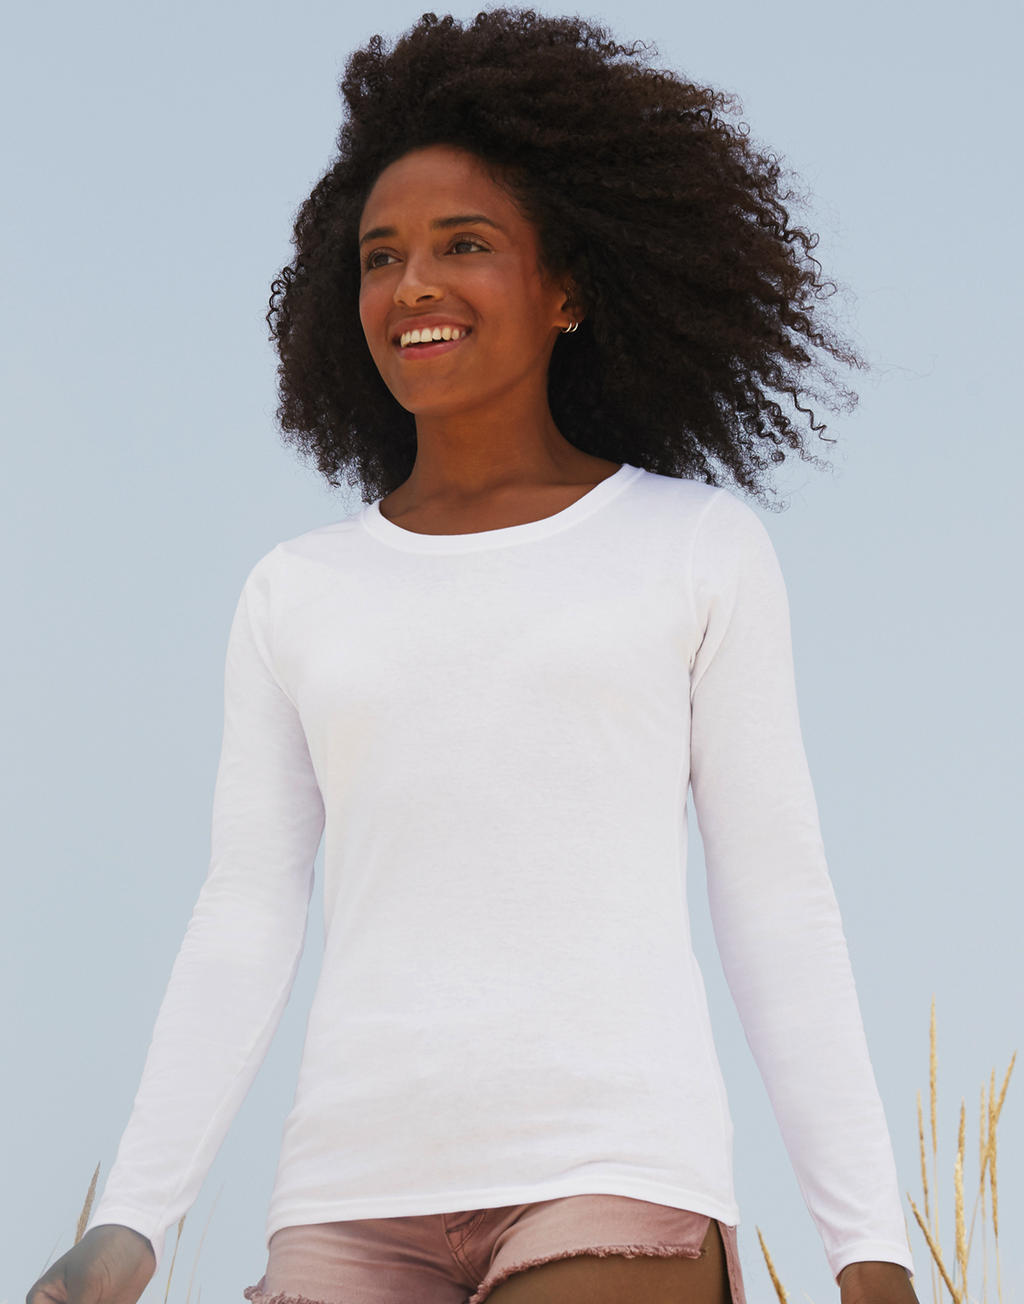 Fruit of the Loom: Lady-Fit Long Sleeve Crew Neck T 61-384-0